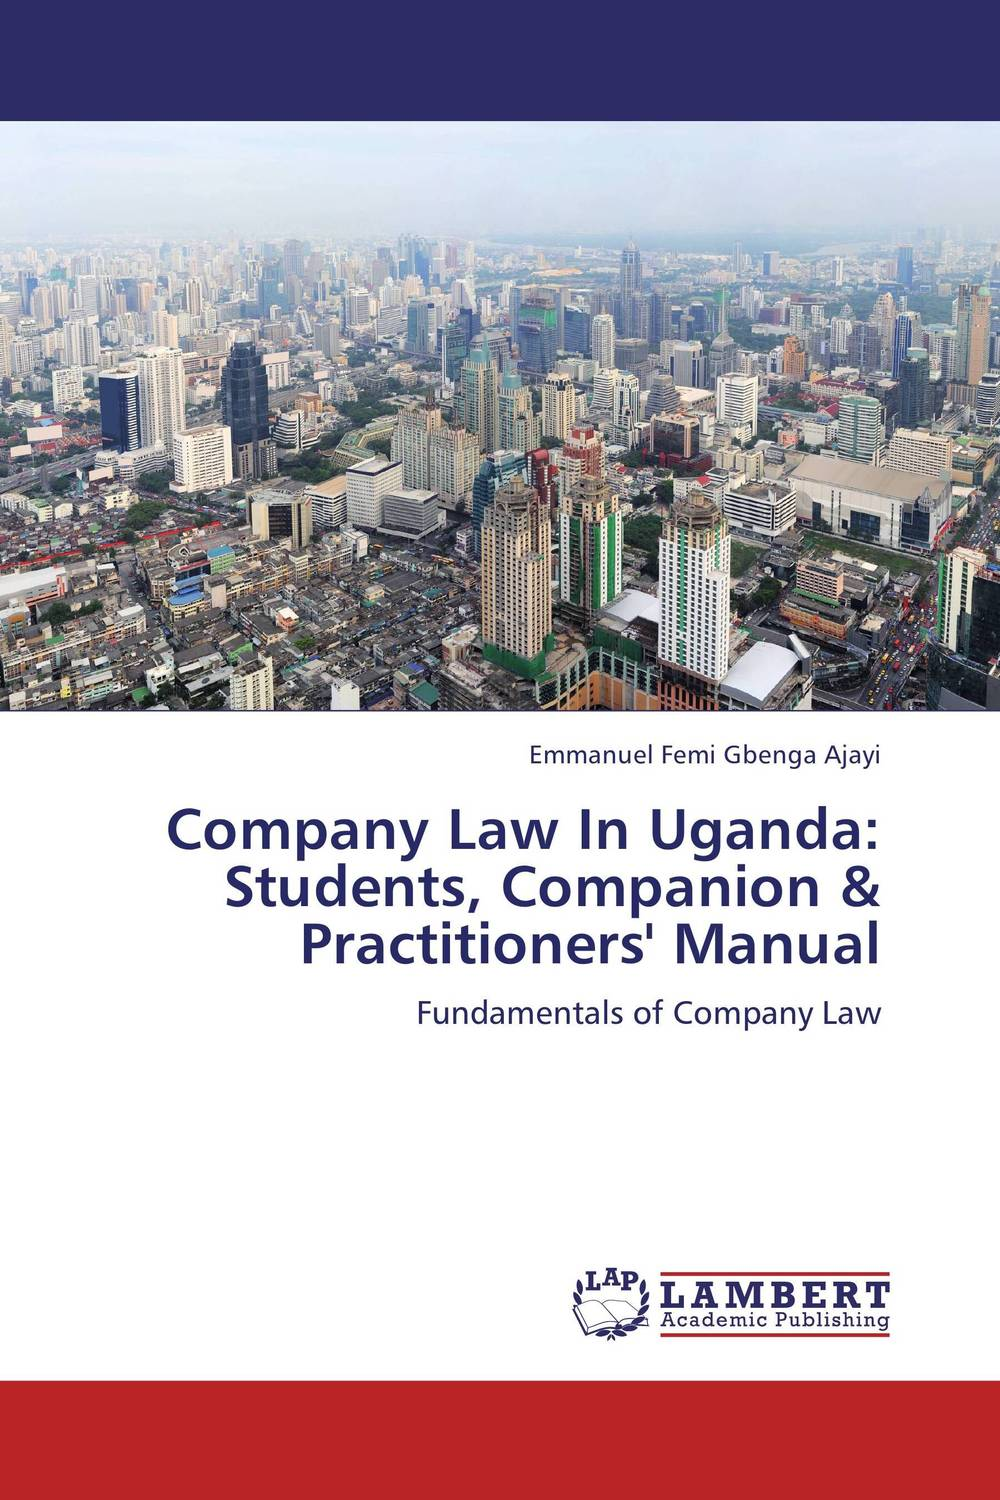 Company Law In Uganda: Students, Companion & Practitioners' Manual keyyou without blade 2 buttons car key shell remote fob cover case for renault dacia modus clio 3 twingo kangoo 2 with logo